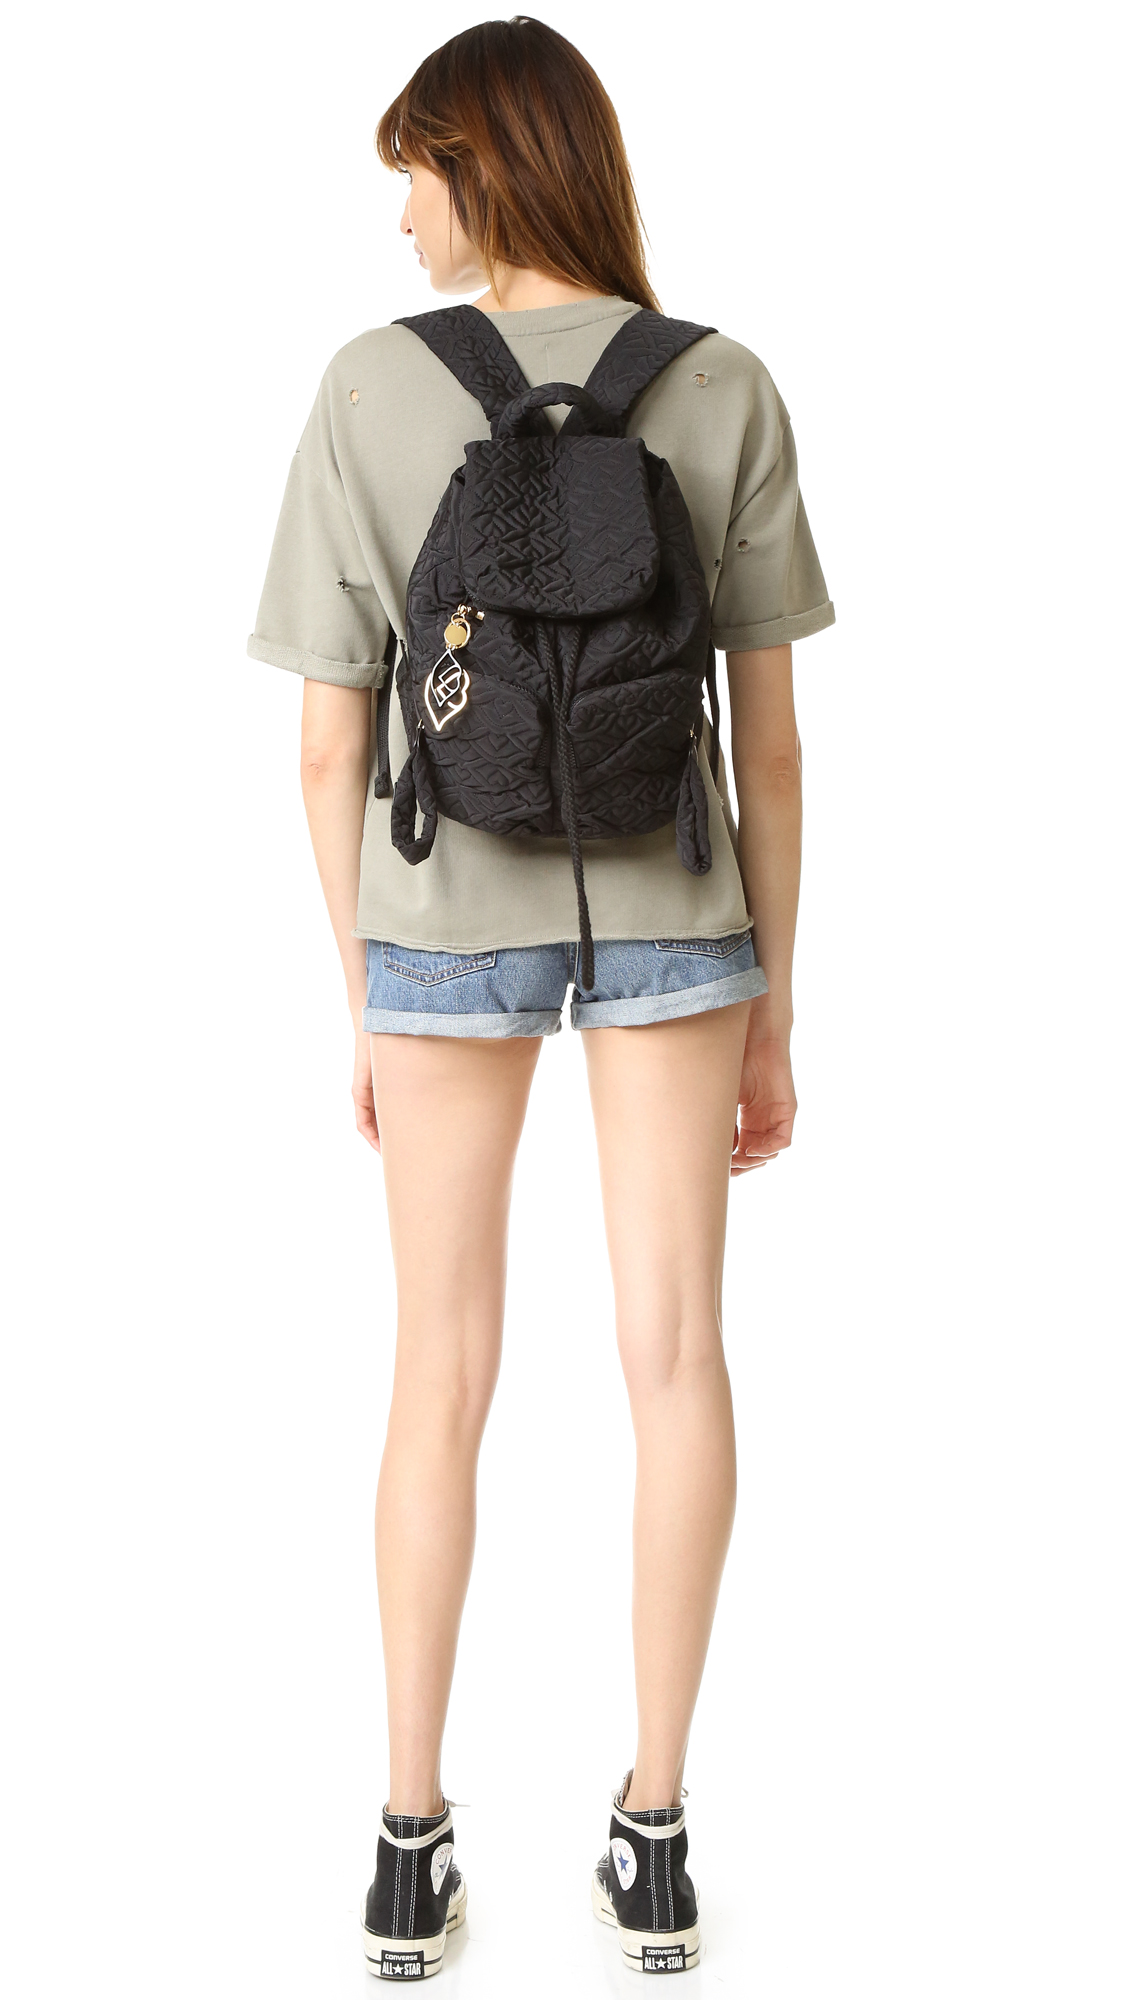 369a620c52 See by Chloe Joy Rider Backpack | SHOPBOP